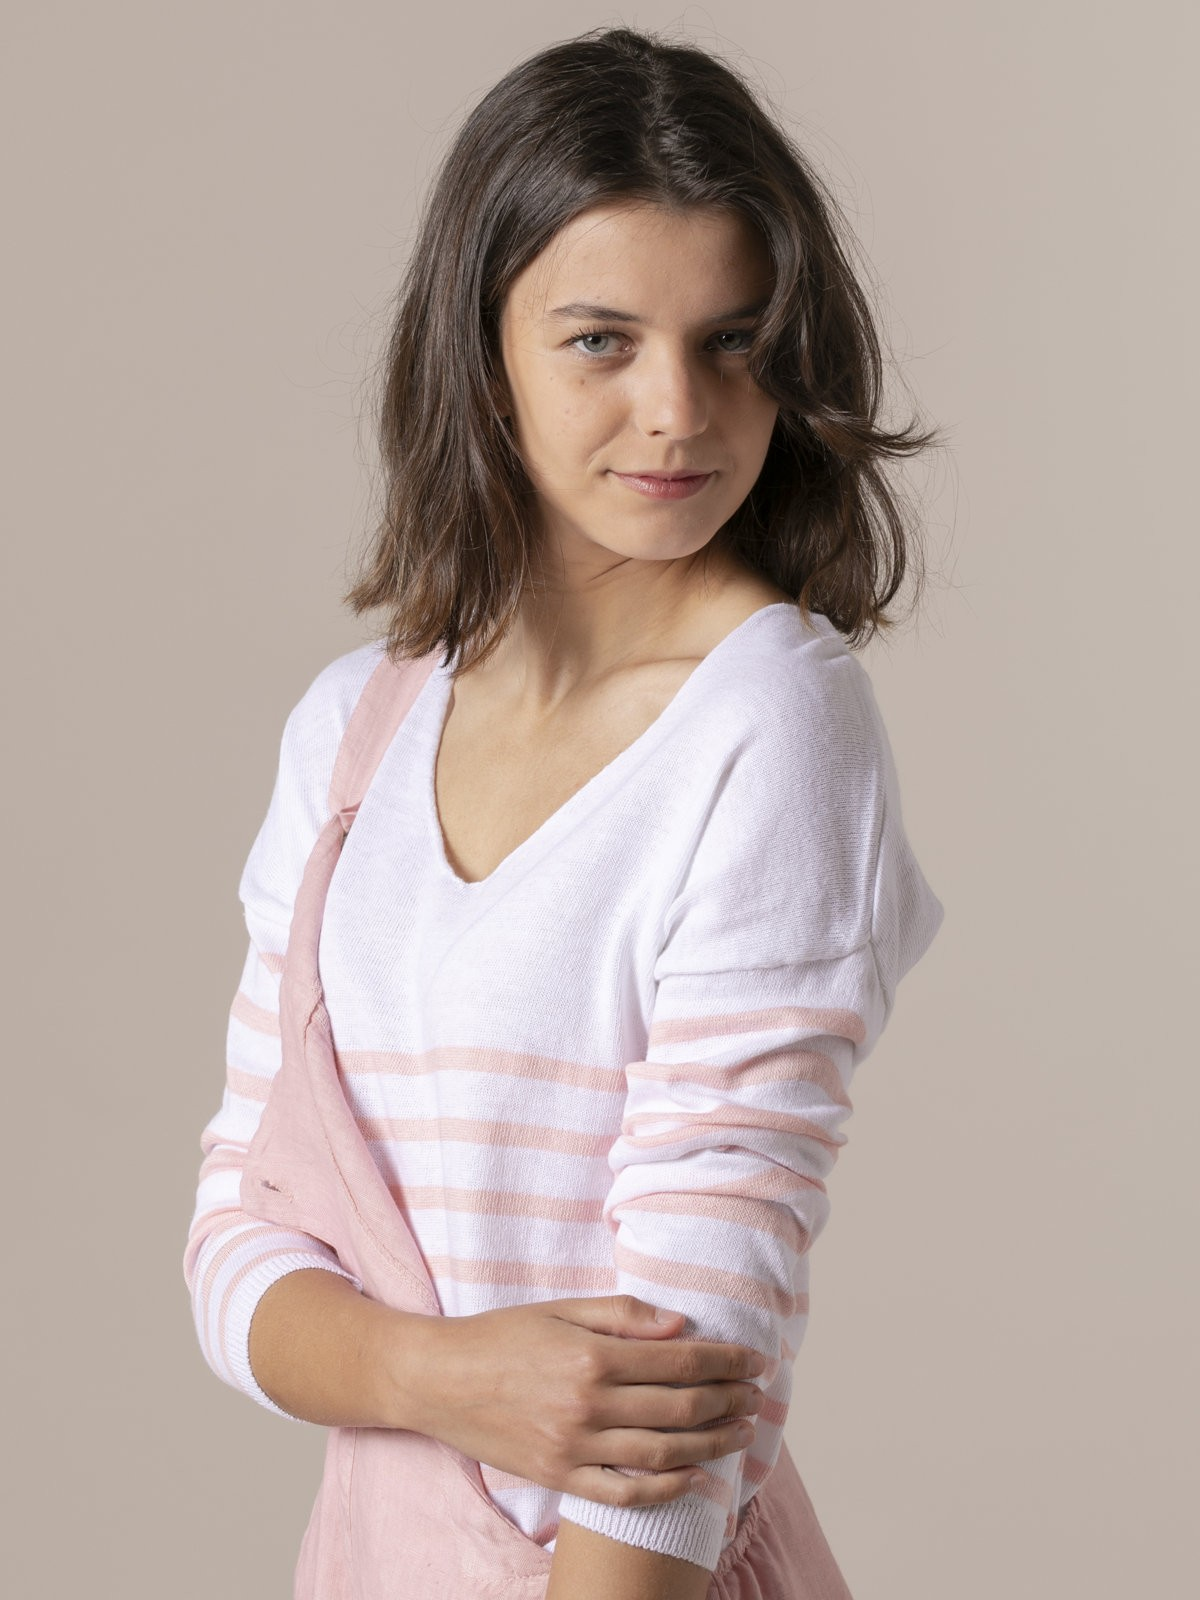 Woman LightWoman weight knit sweater with striped hem Pink